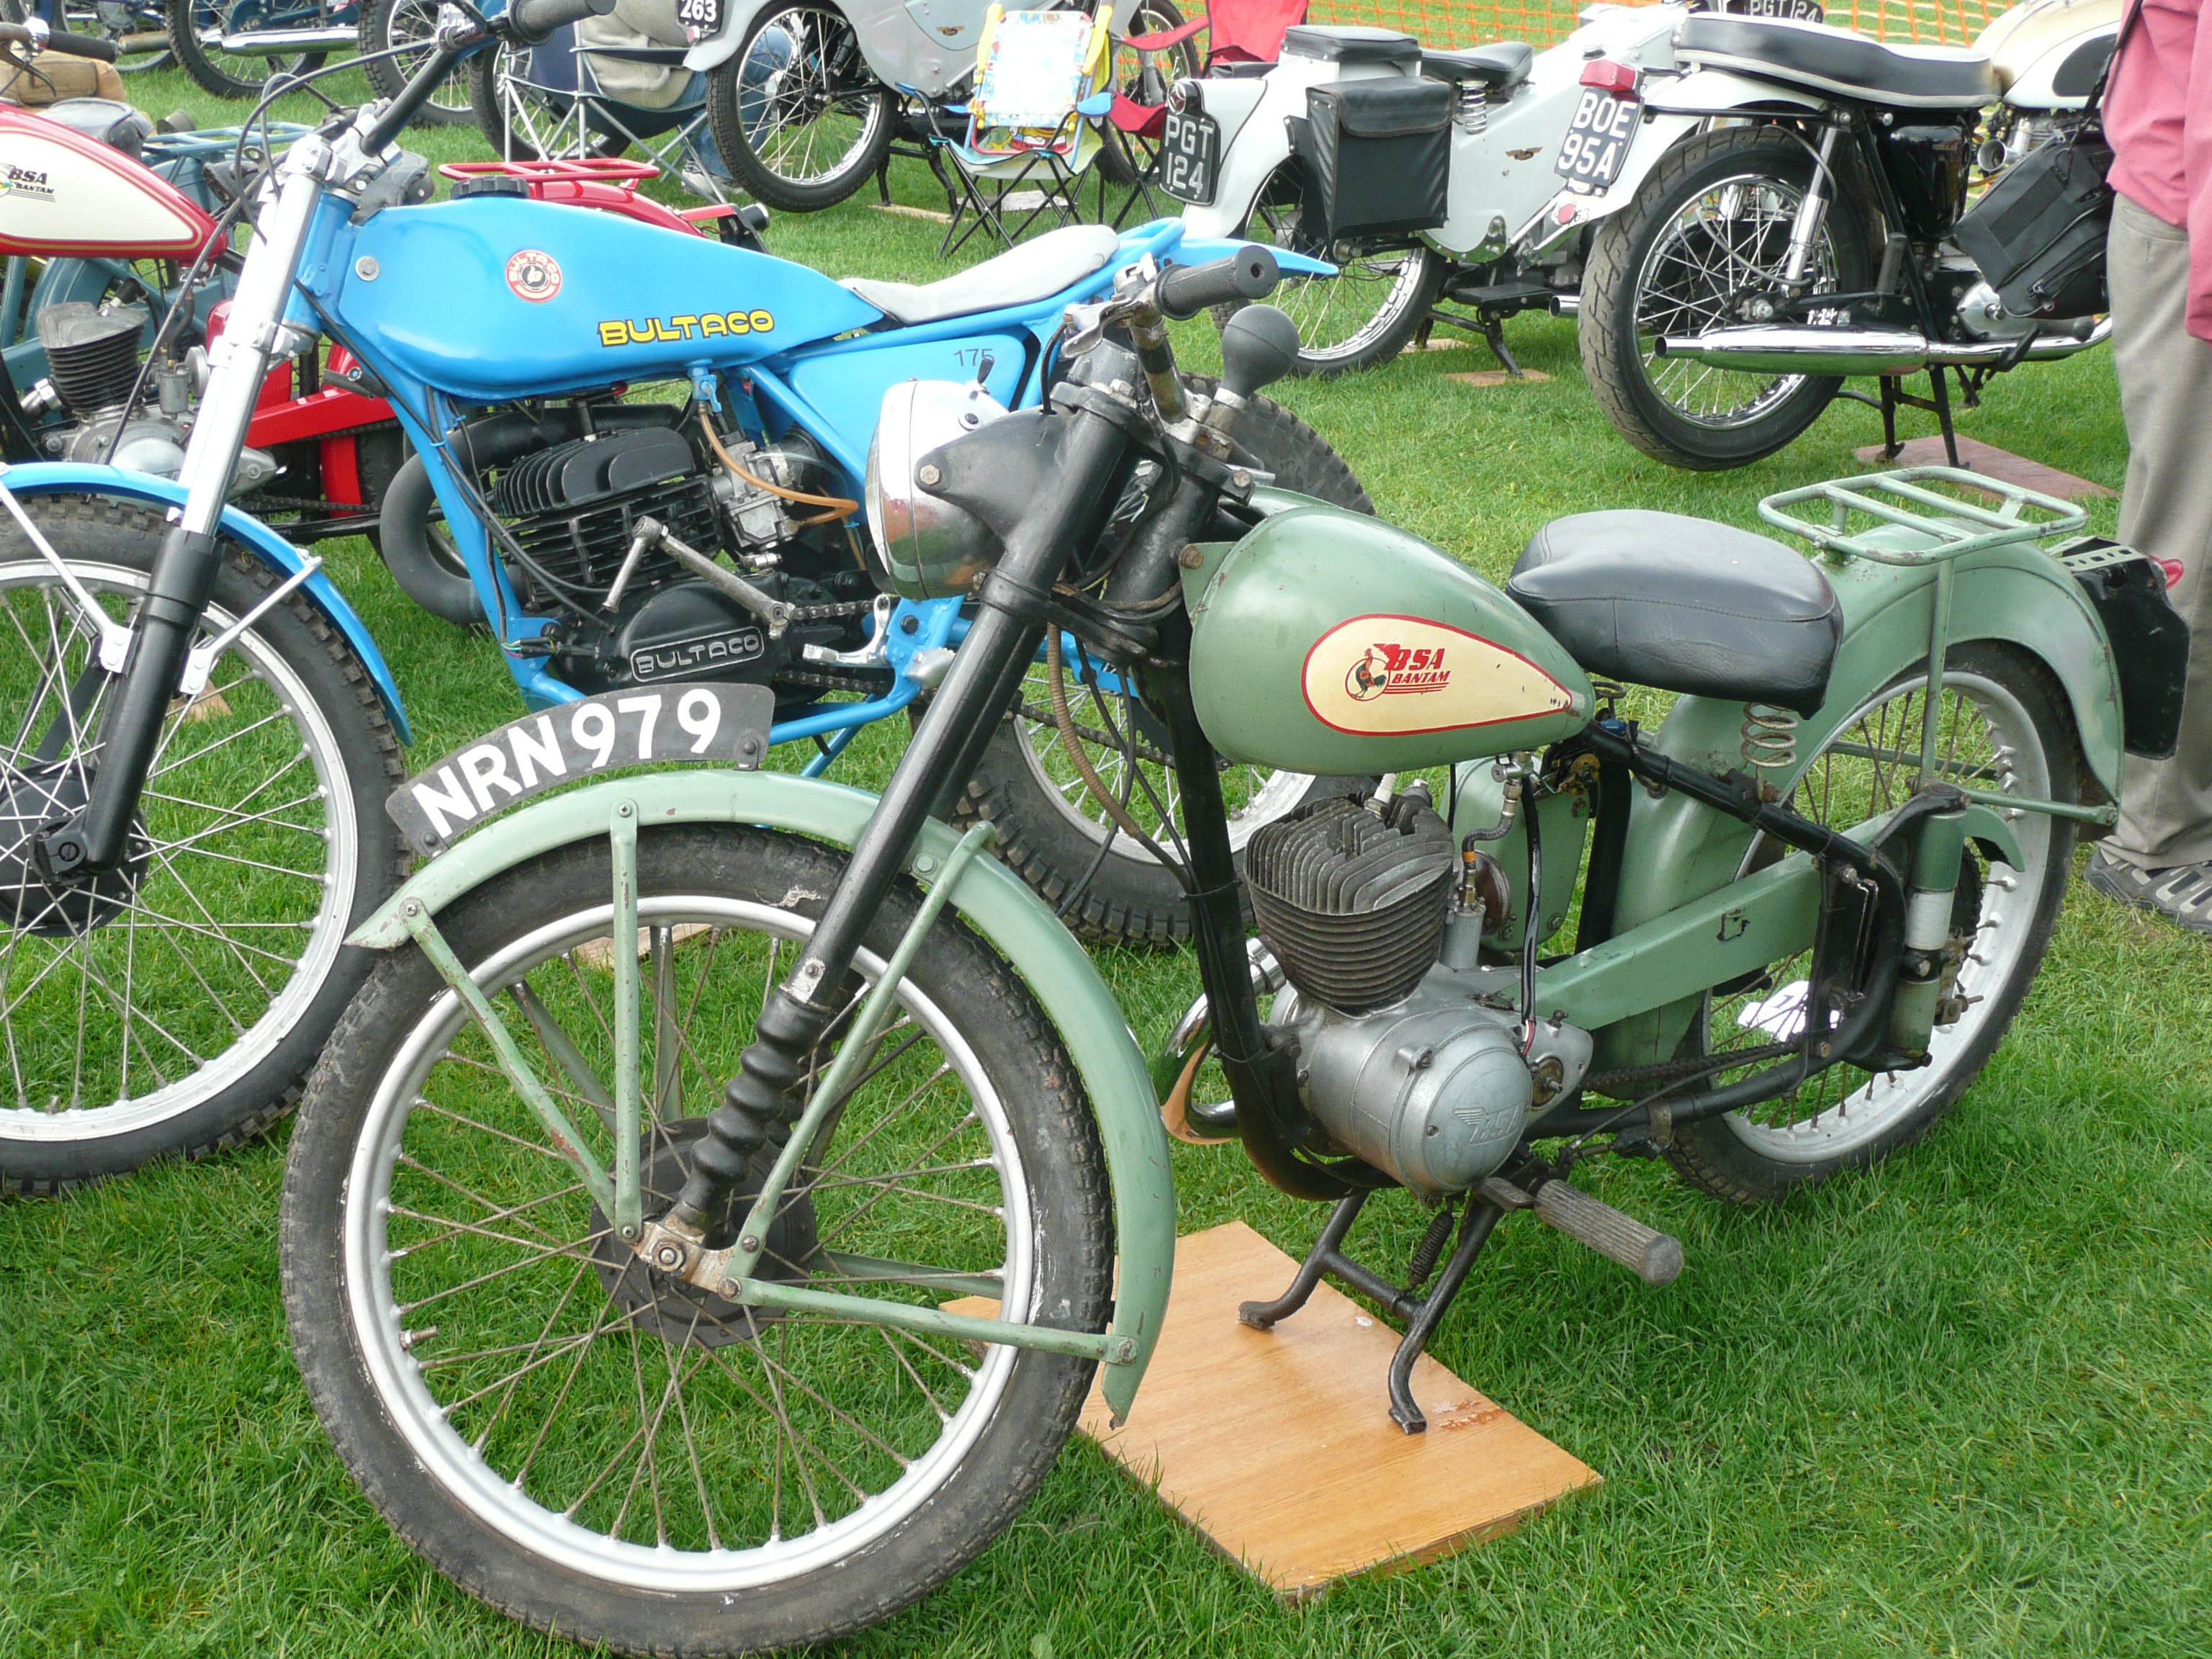 Bsa bantam photo - 1